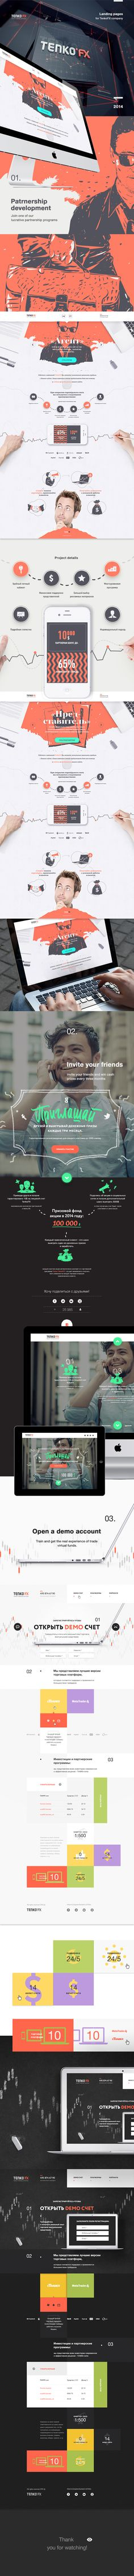 Tenko FX. Landing pages on